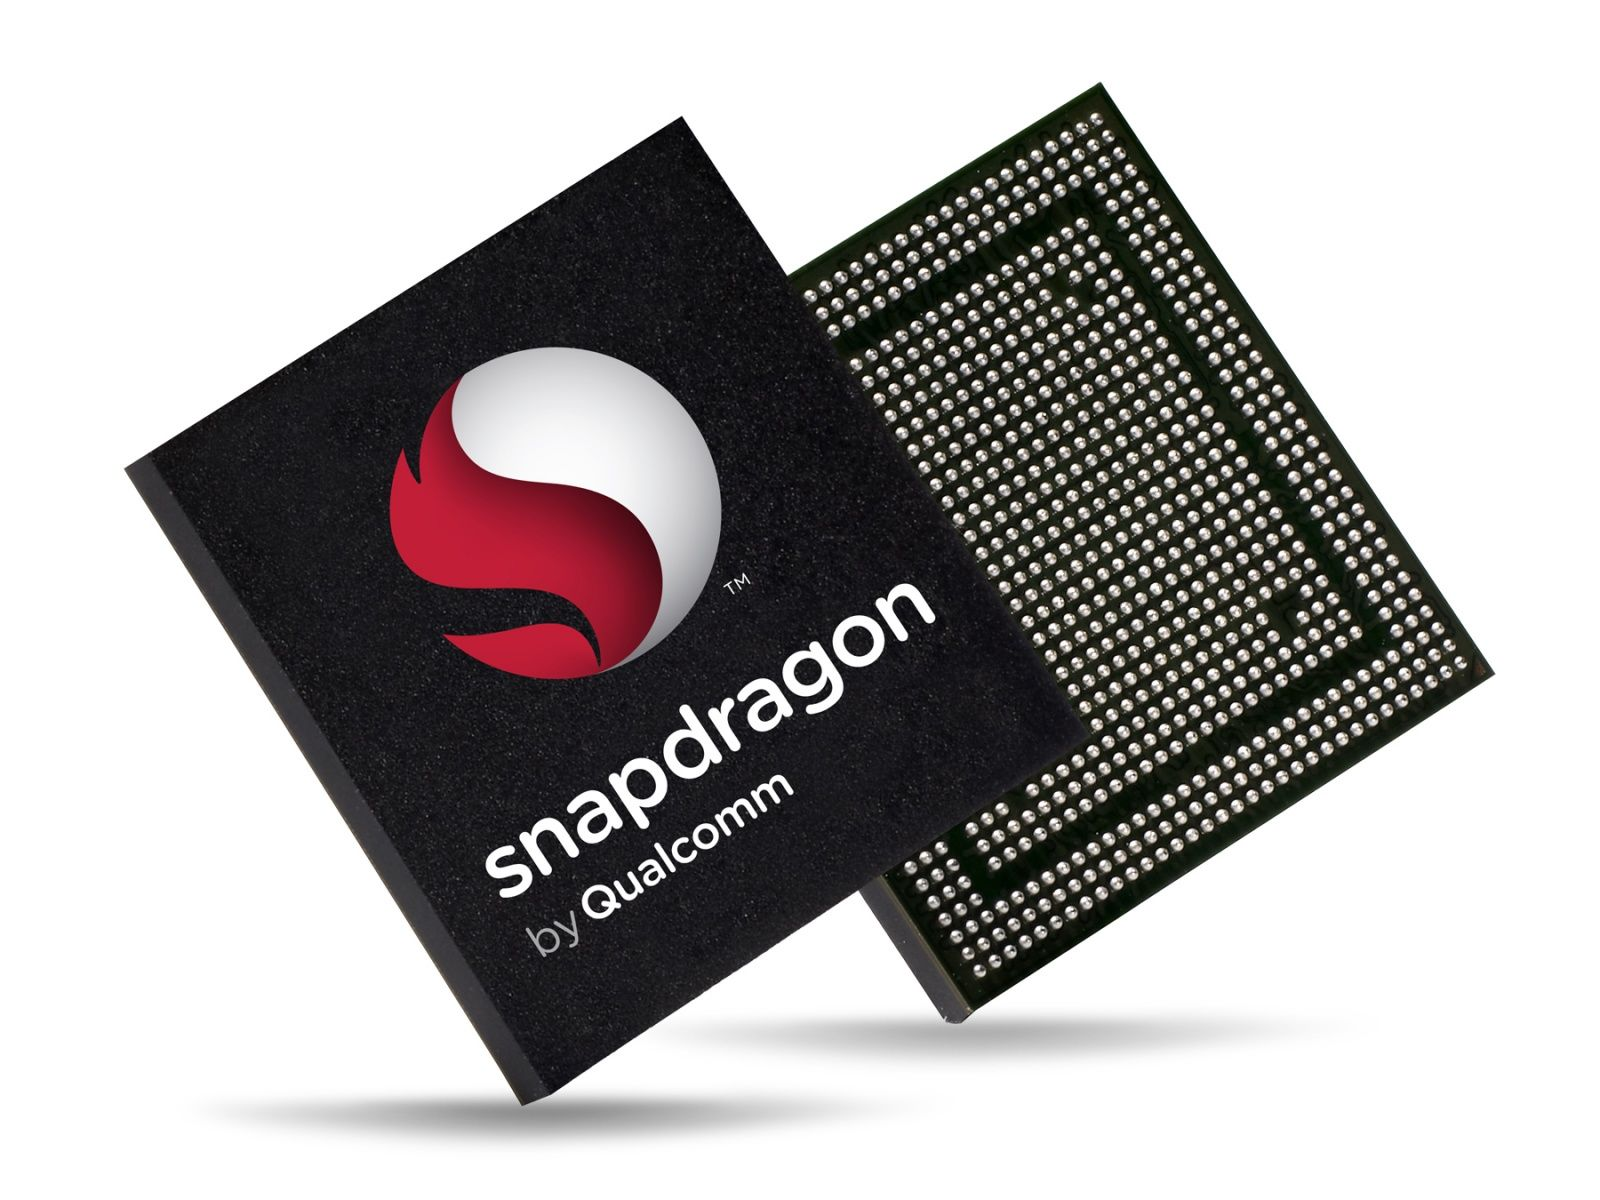 Qualcomm Snapdragon 810 SoC Supports 450 Mbps LTE